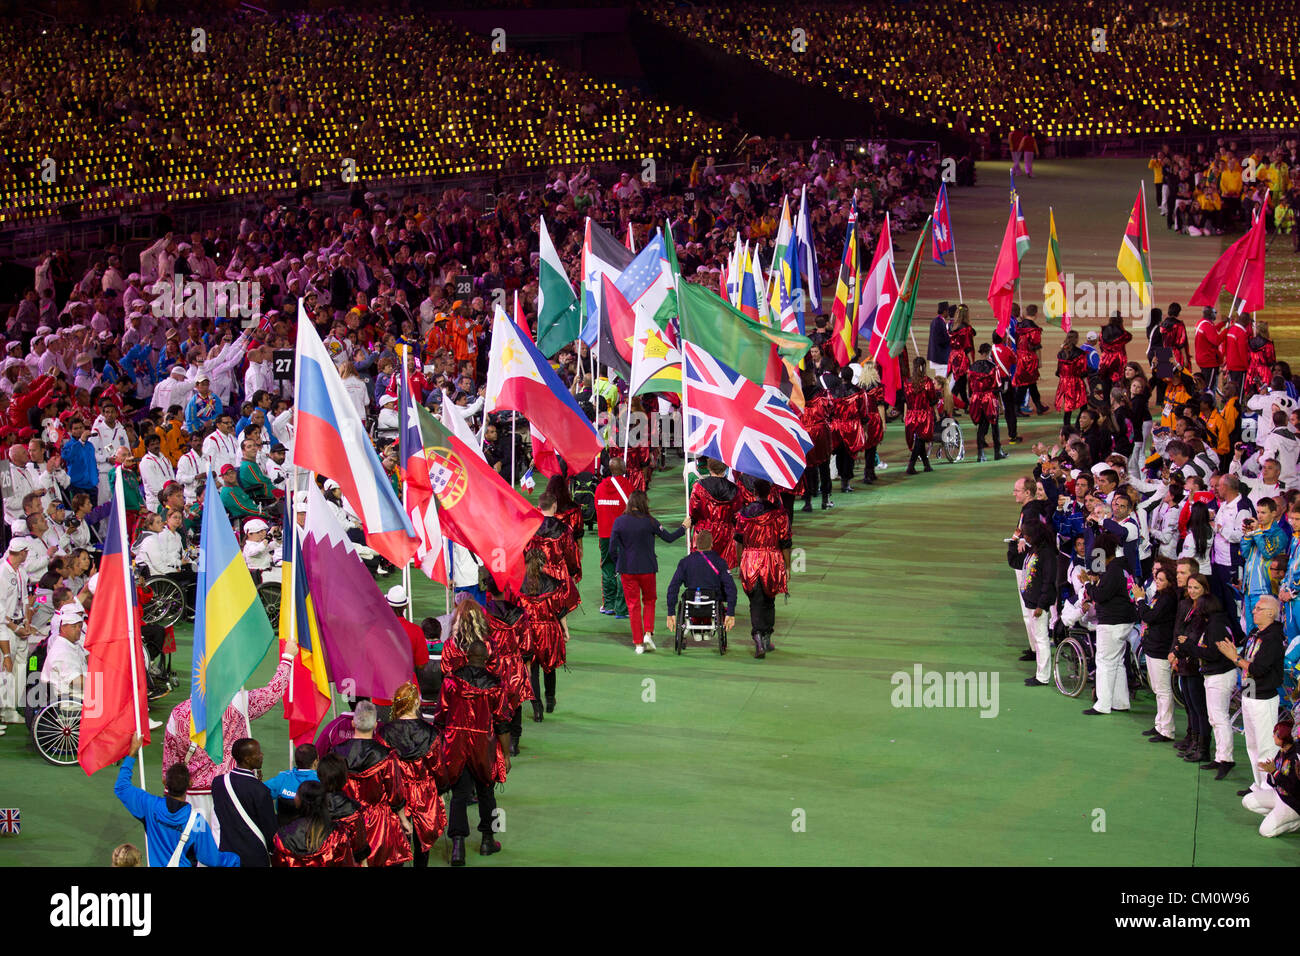 Athletes carry their countries' flags into Olympic Stadium at the closing ceremony of the 2012 Paralympic Games Stock Photo